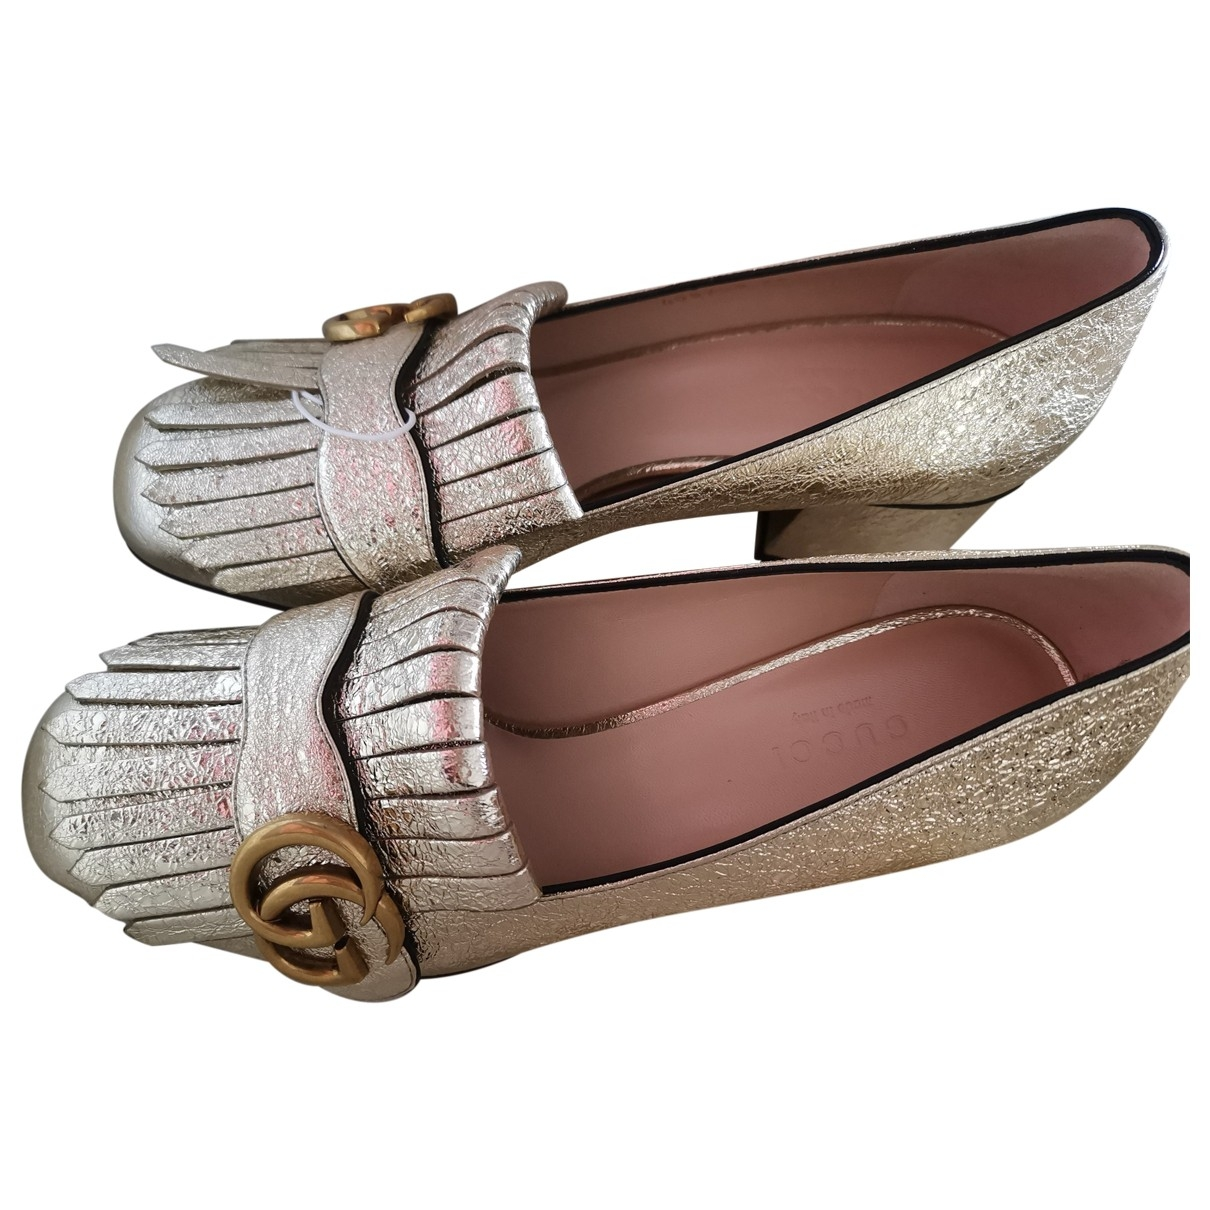 Gucci Marmont Gold Leather Flats for Women 36 EU